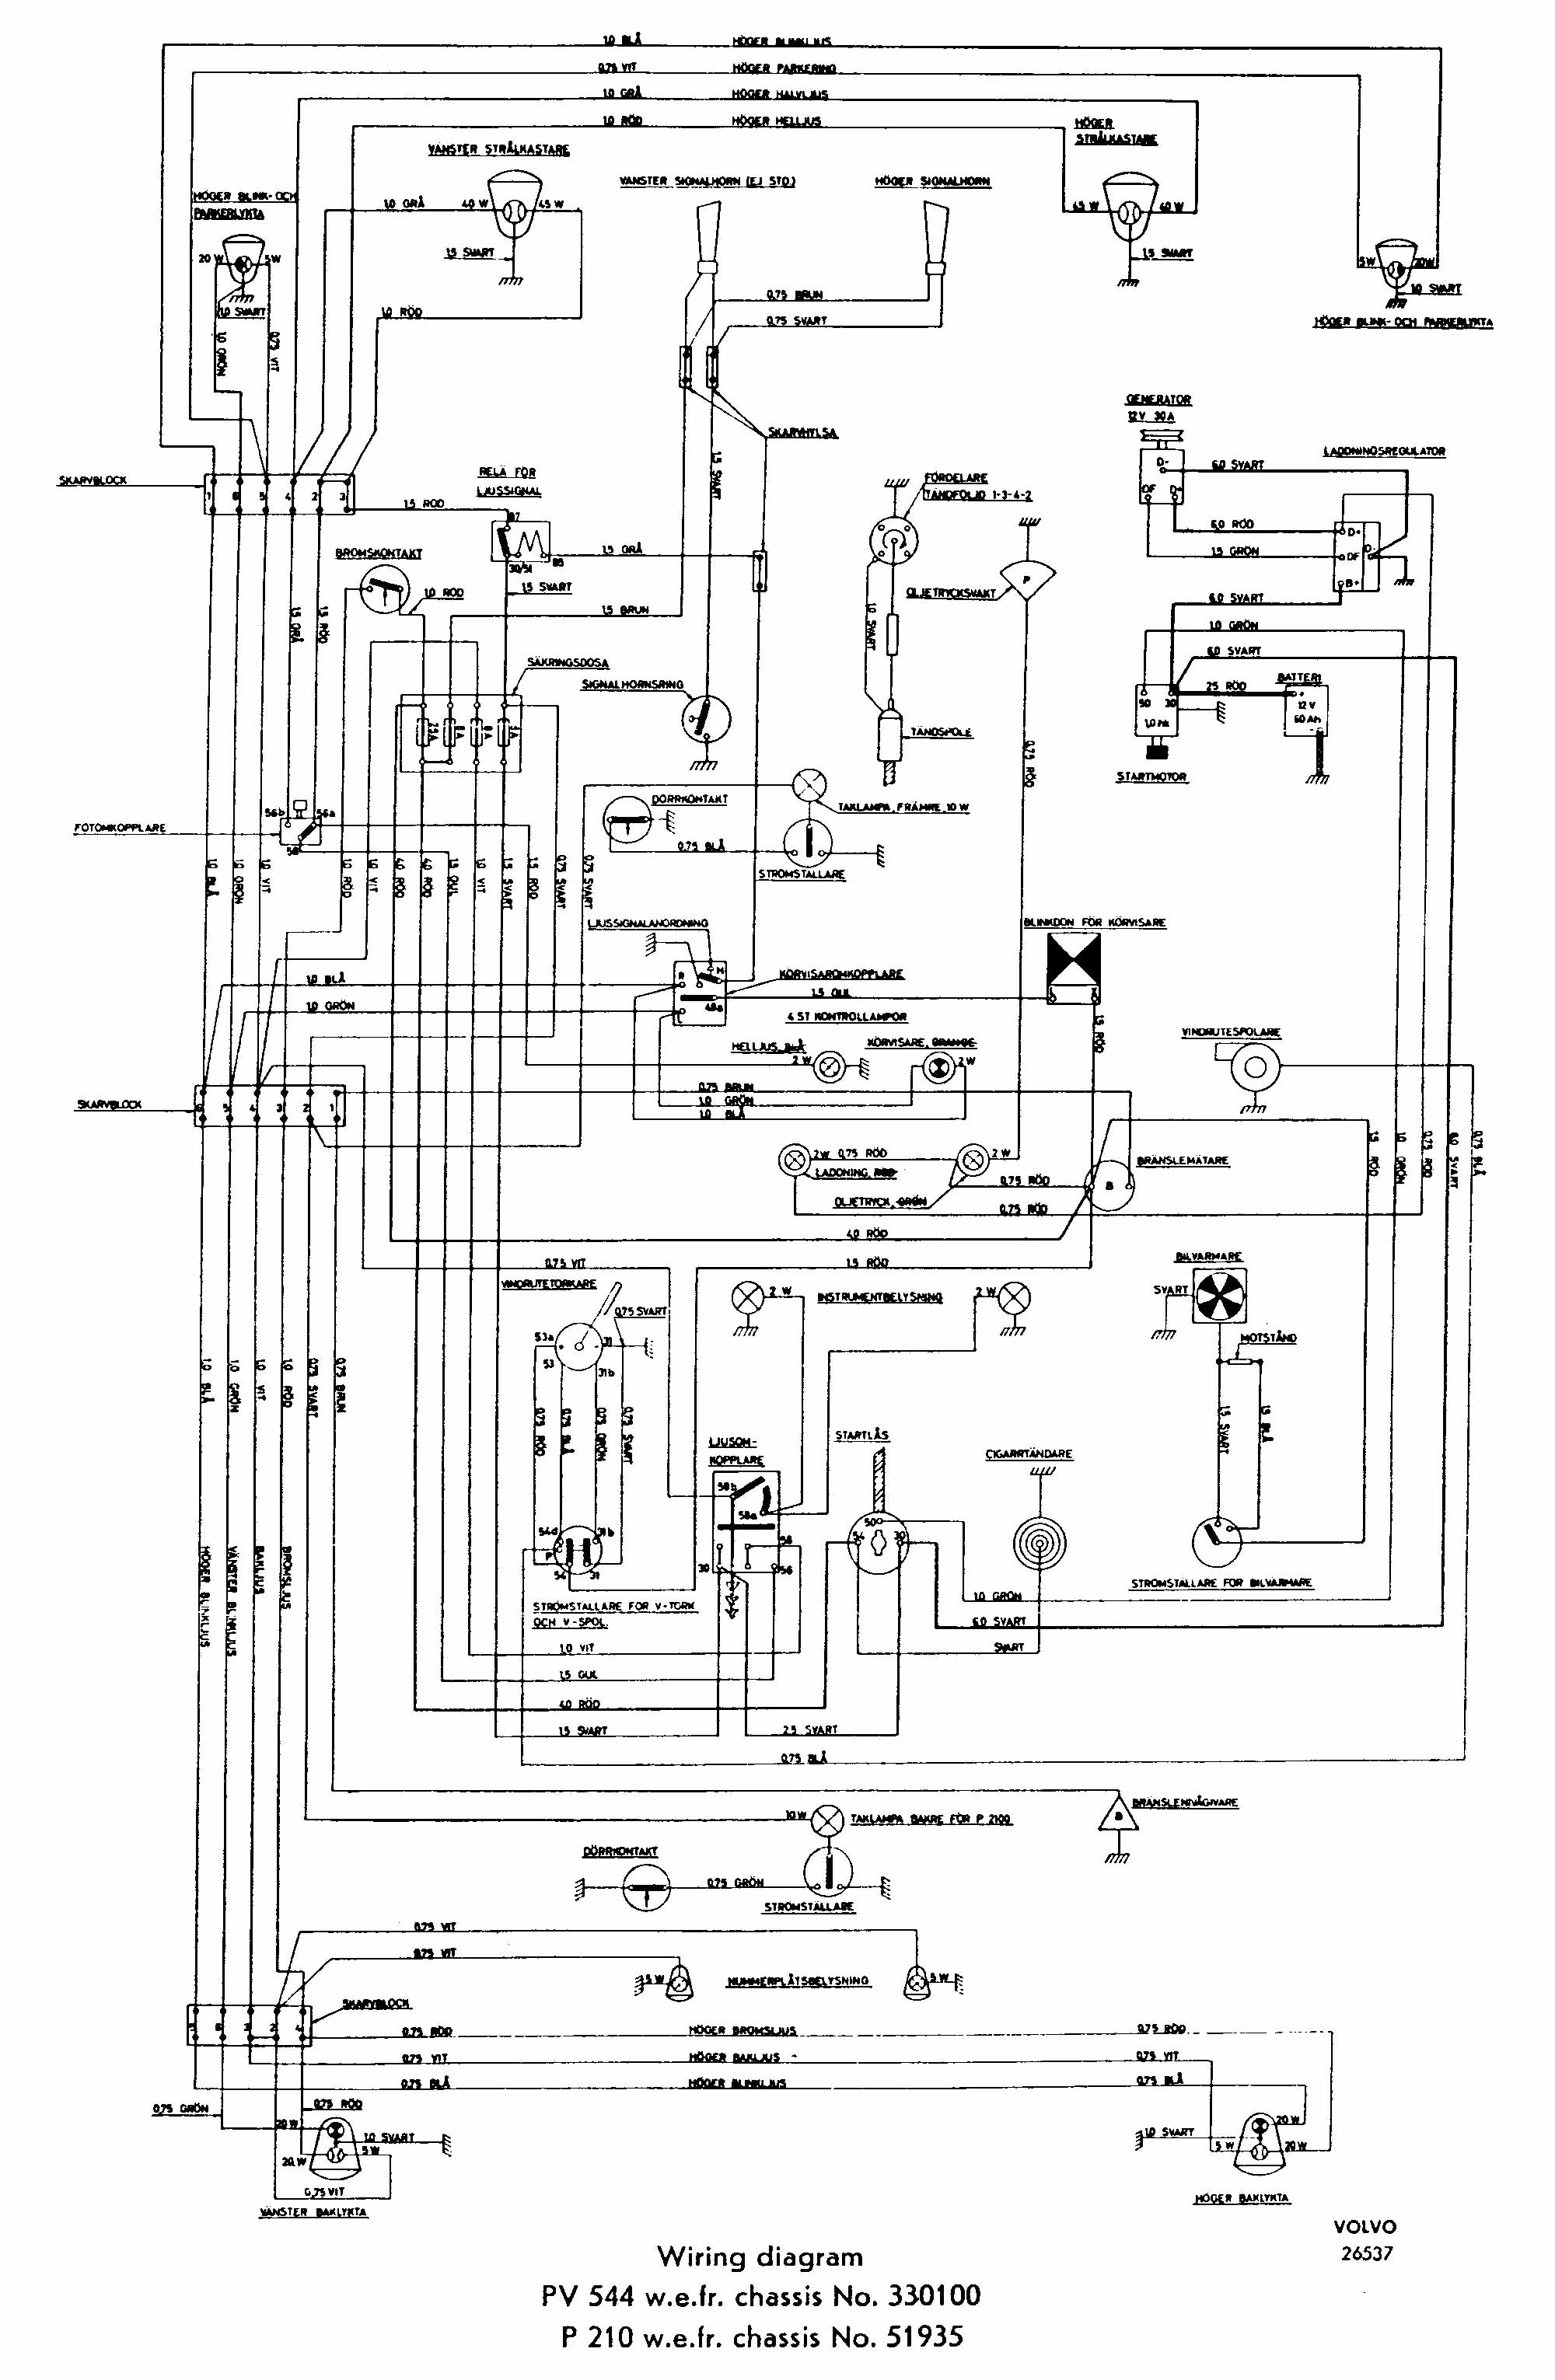 544 Wiring Diagram sw em service notes moon tachometer wiring diagram at crackthecode.co